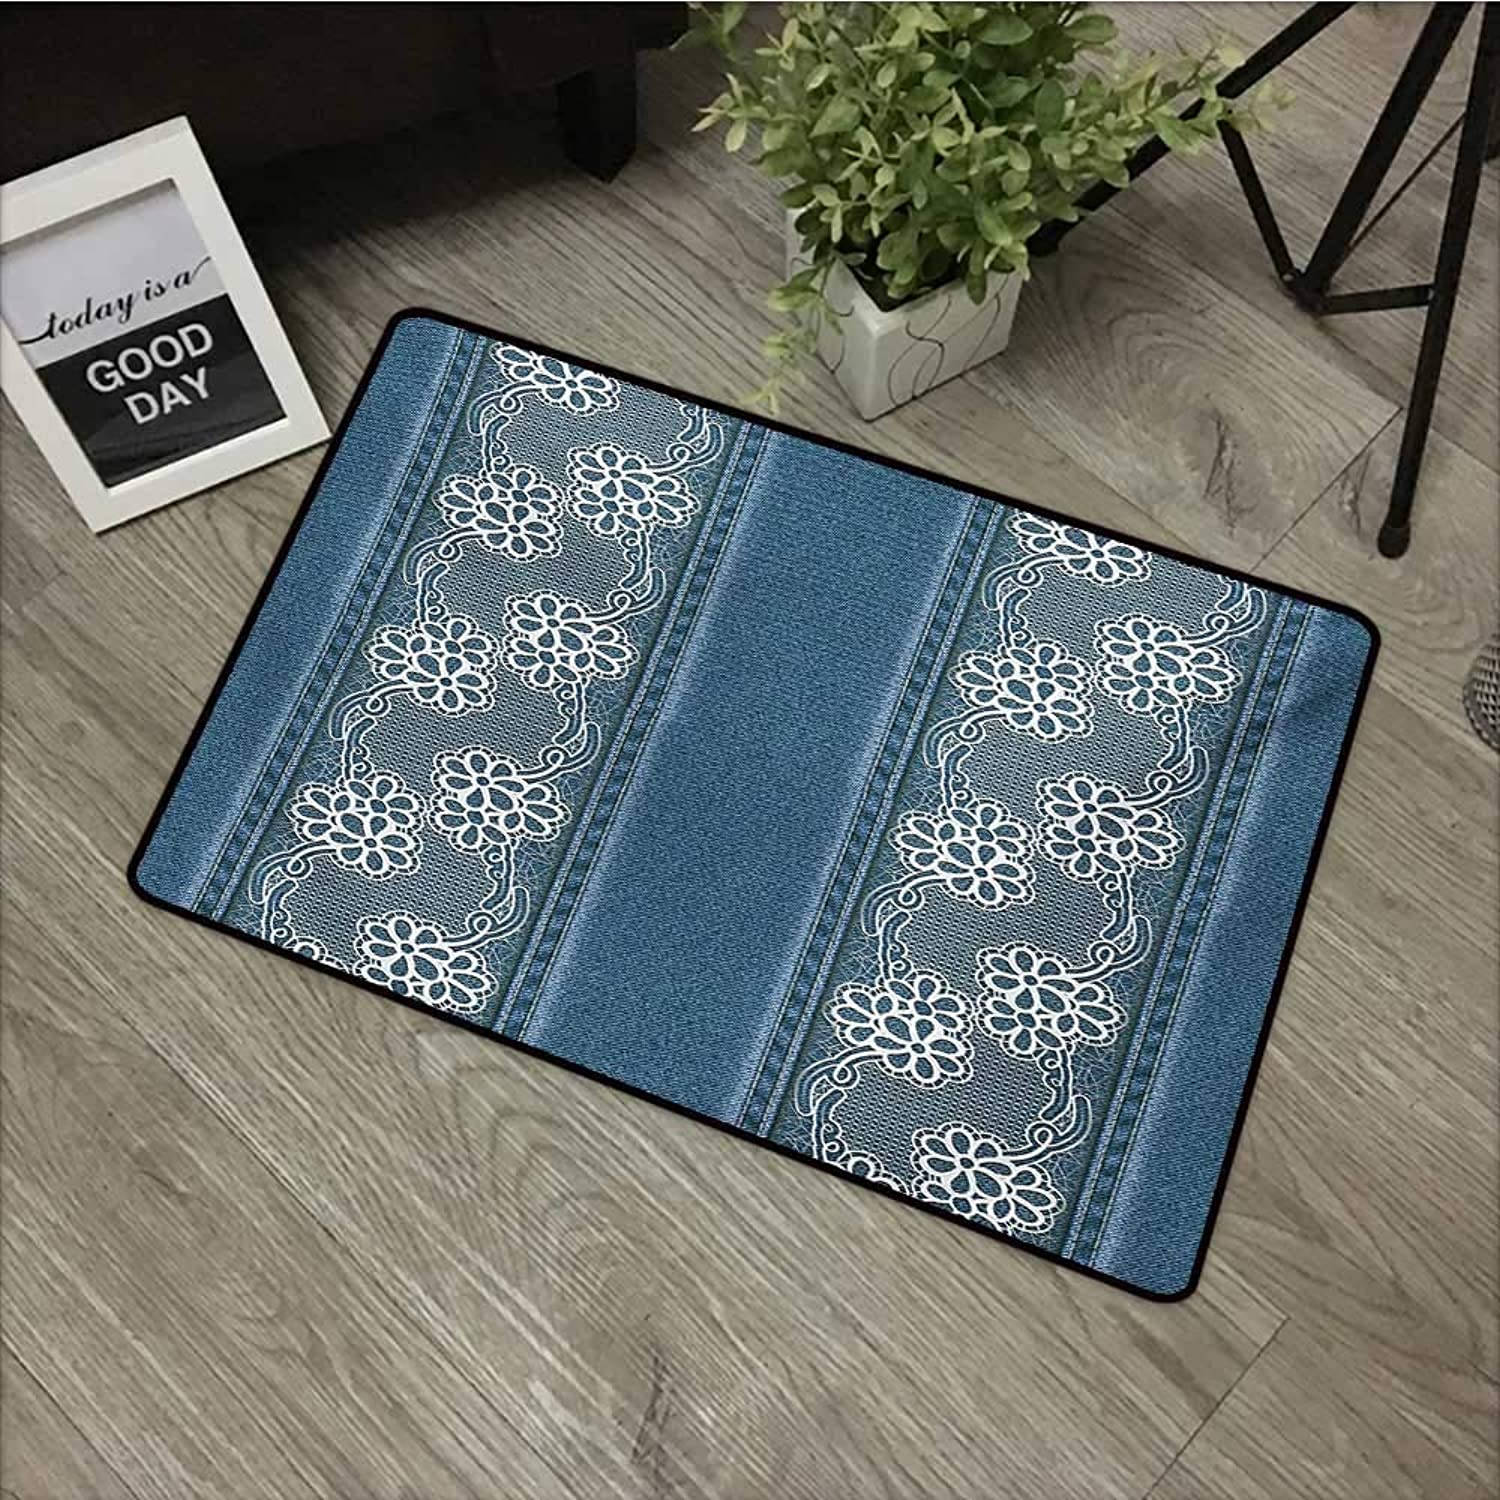 Door mat W35 x L59 INCH Floral,bluee Jeans Background with White Flower Motifs Pattern Denim Themed Digital Print,bluee White with Non-Slip Backing Door Mat Carpet